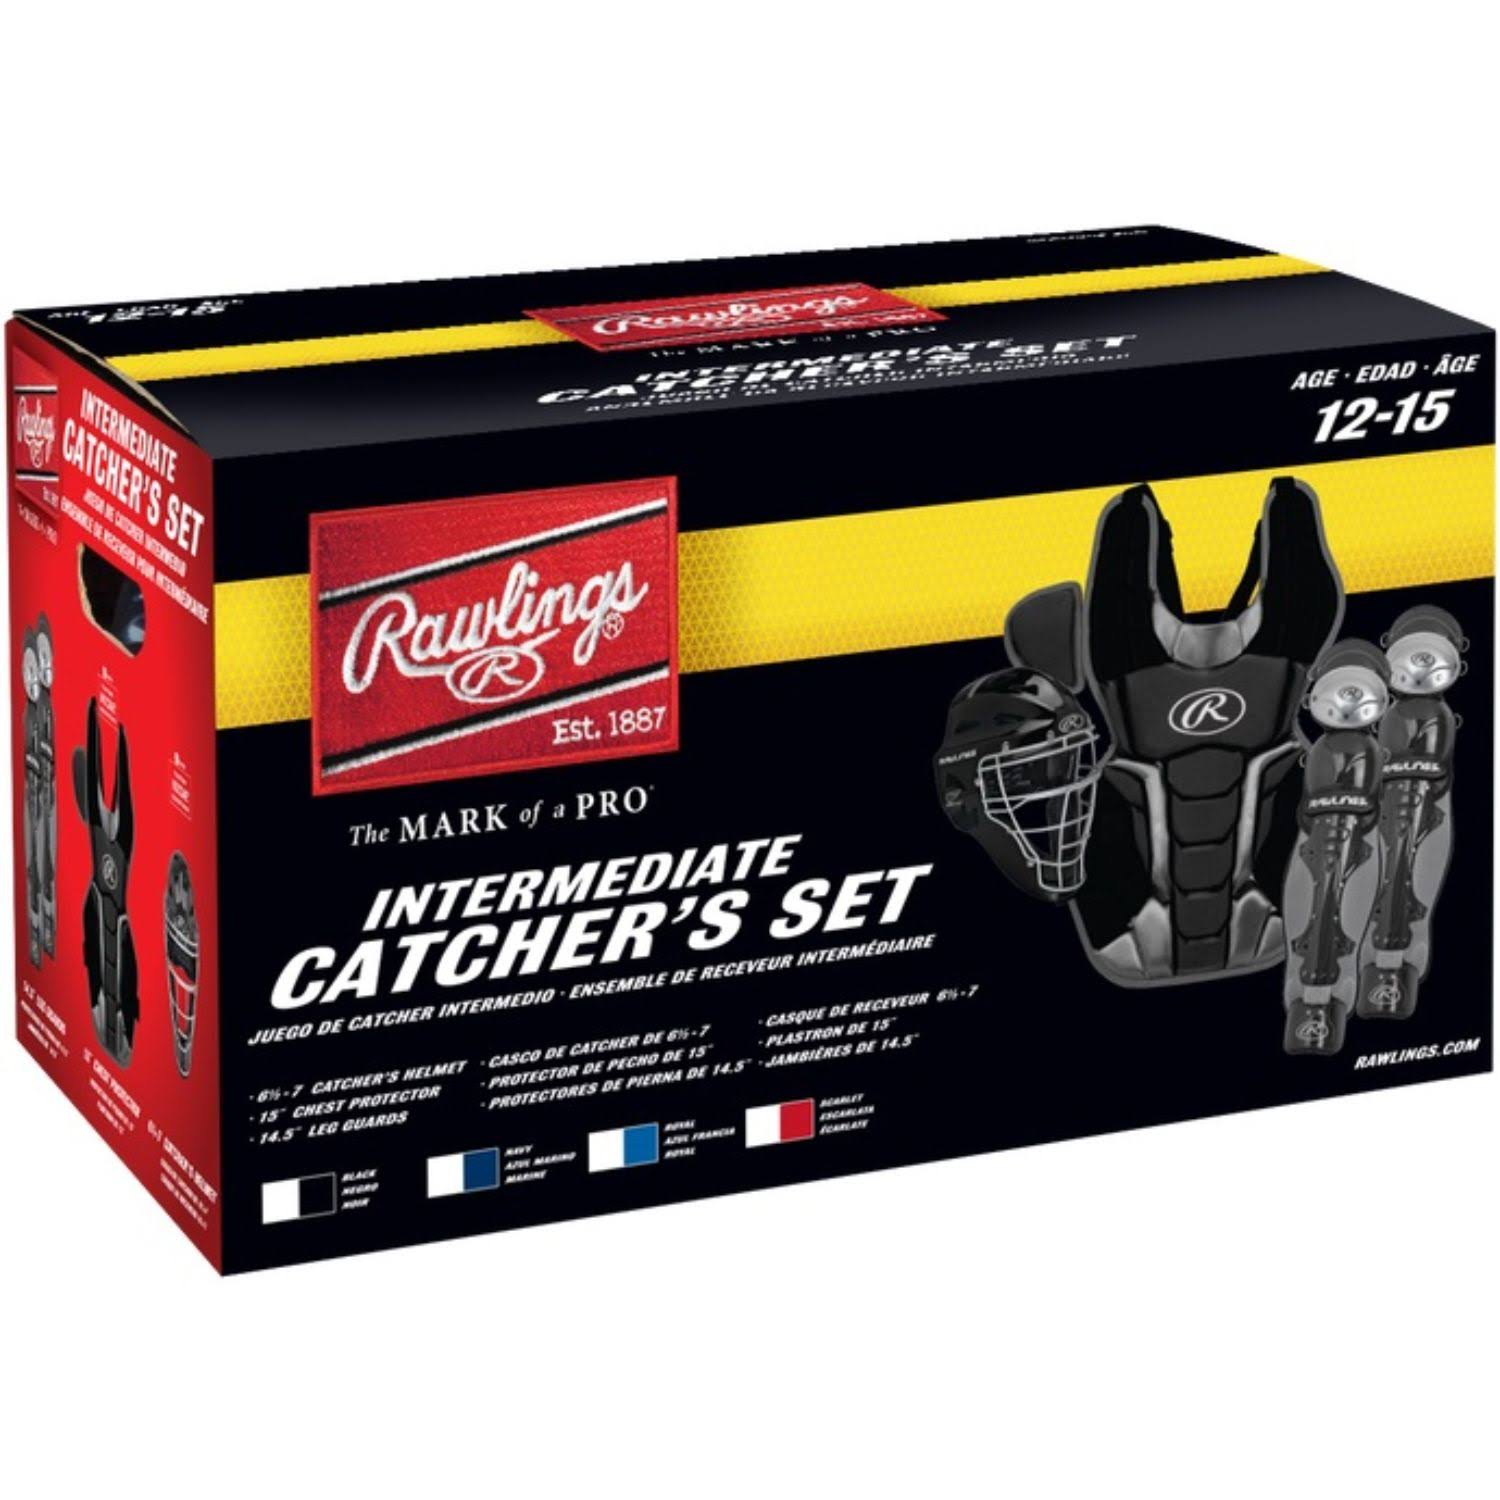 Rawlings Renegade Youth Catchers Set - Black, Ages 12-15 Years